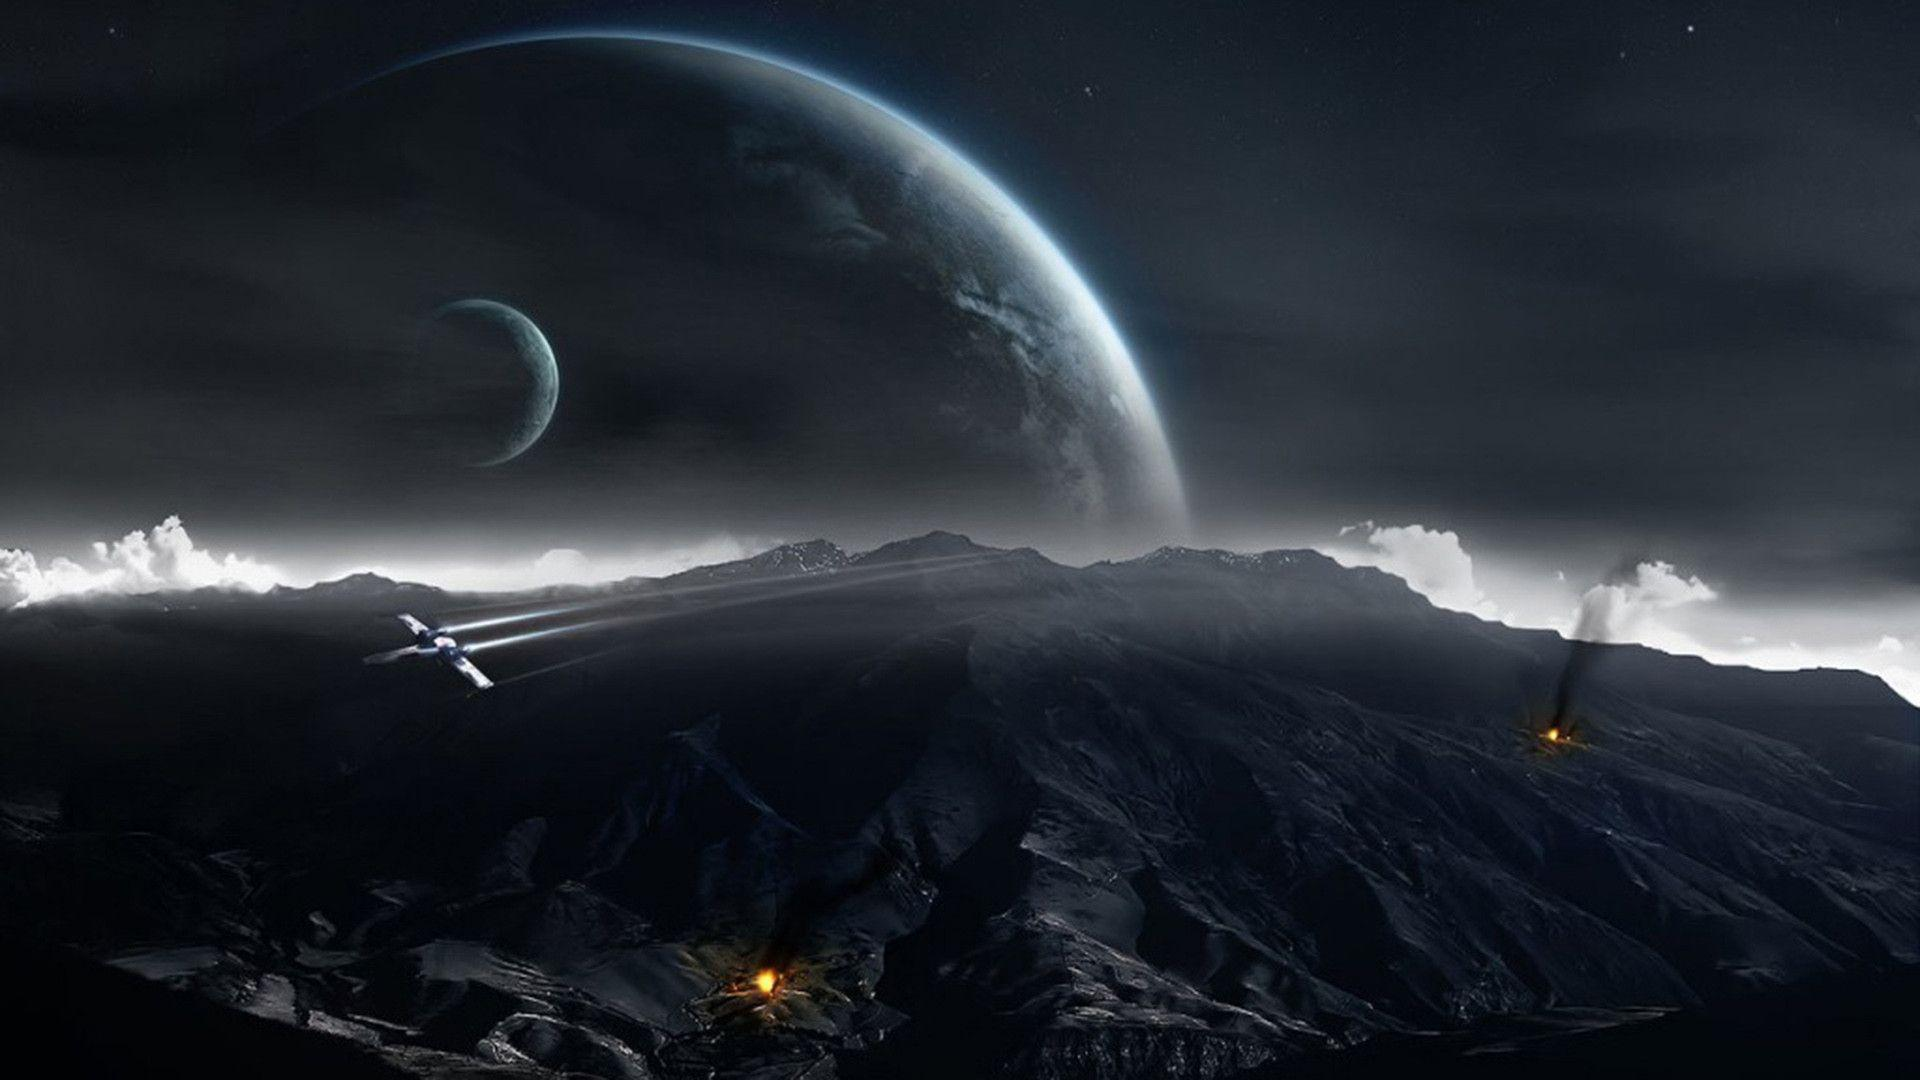 Epic Space Wallpapers - Wallpaper Cave